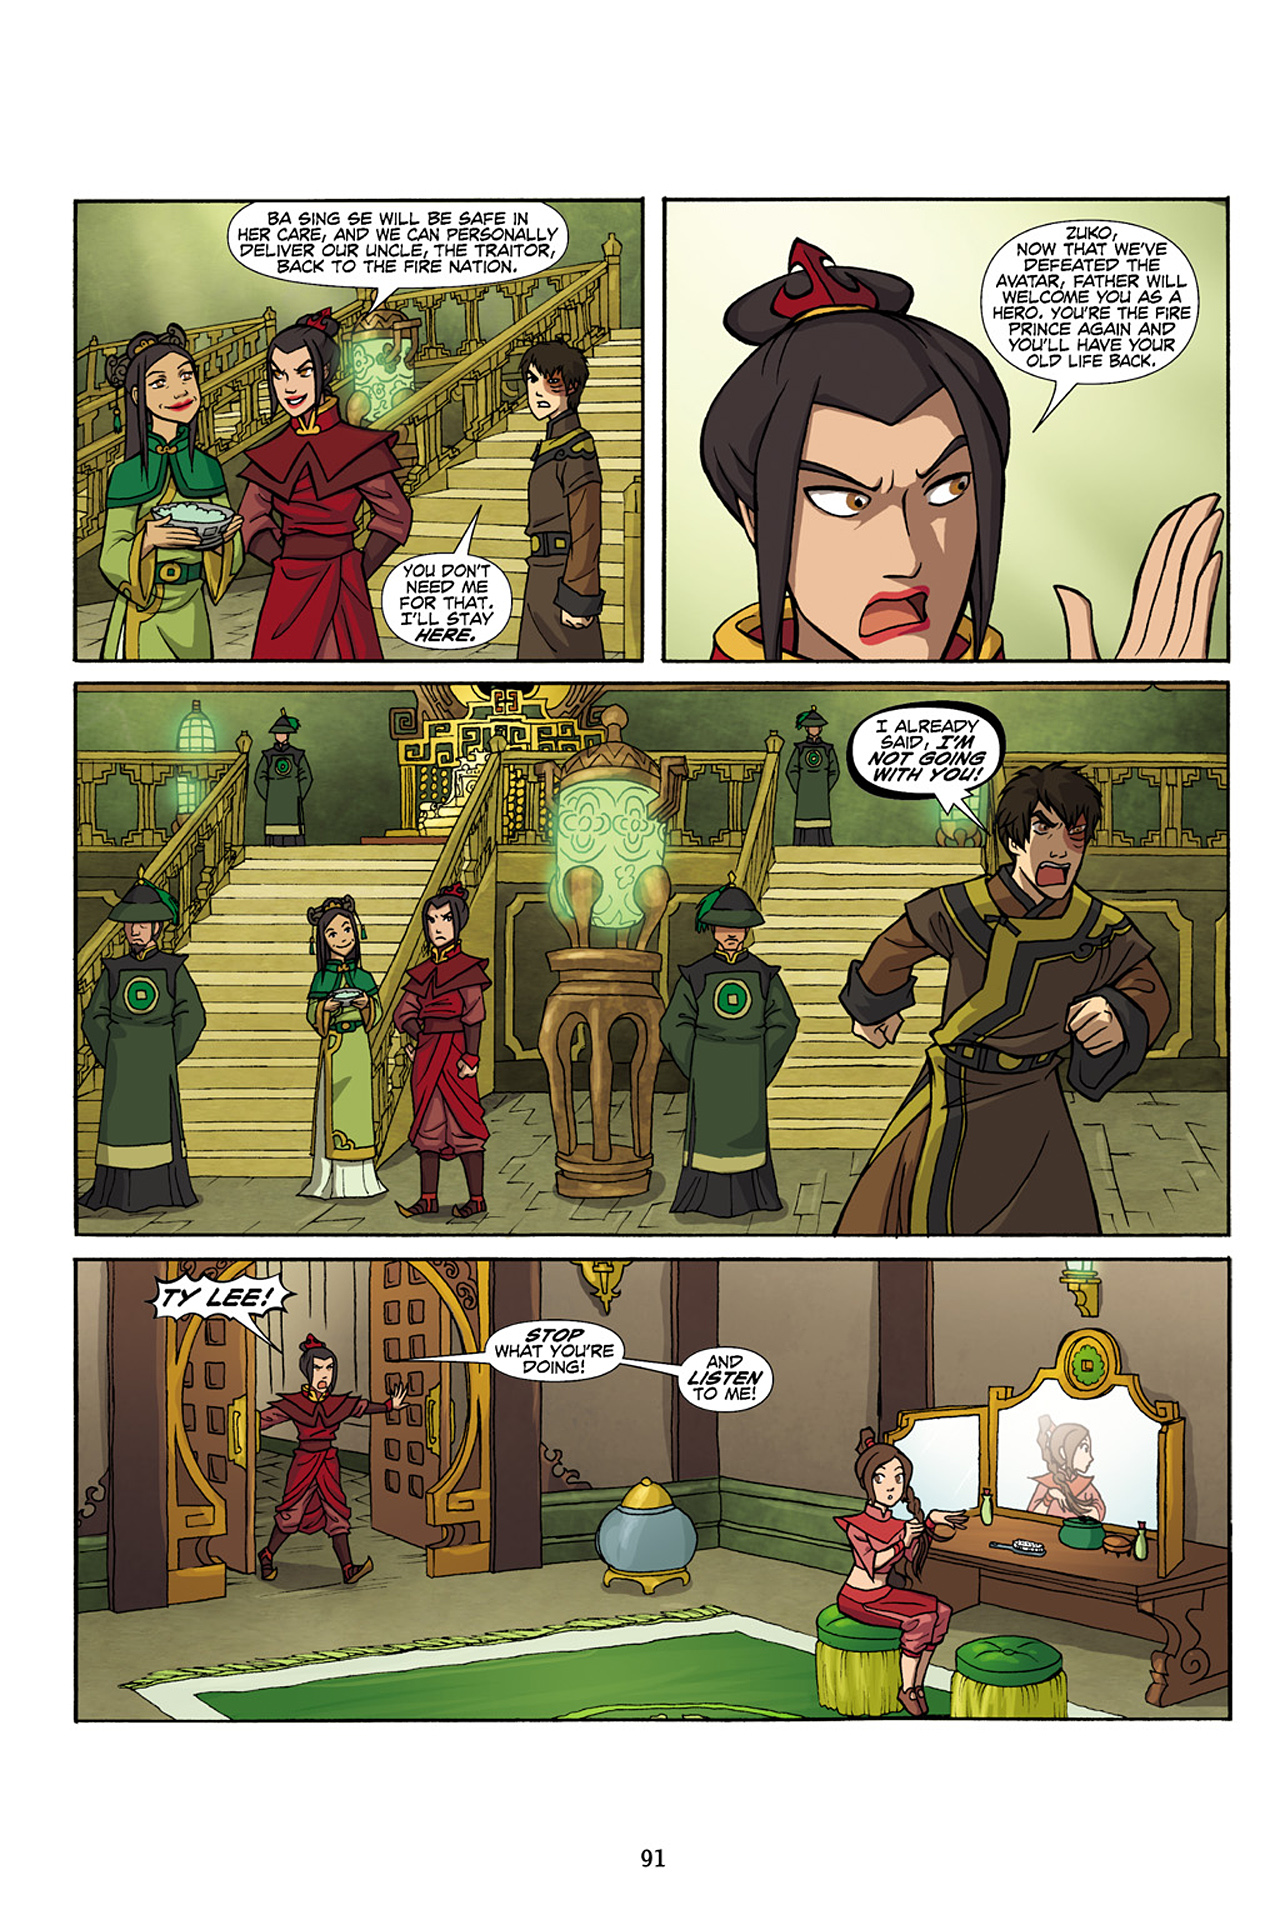 Nickelodeon Avatar: The Last Airbender - The Lost Adventures chap full pic 92